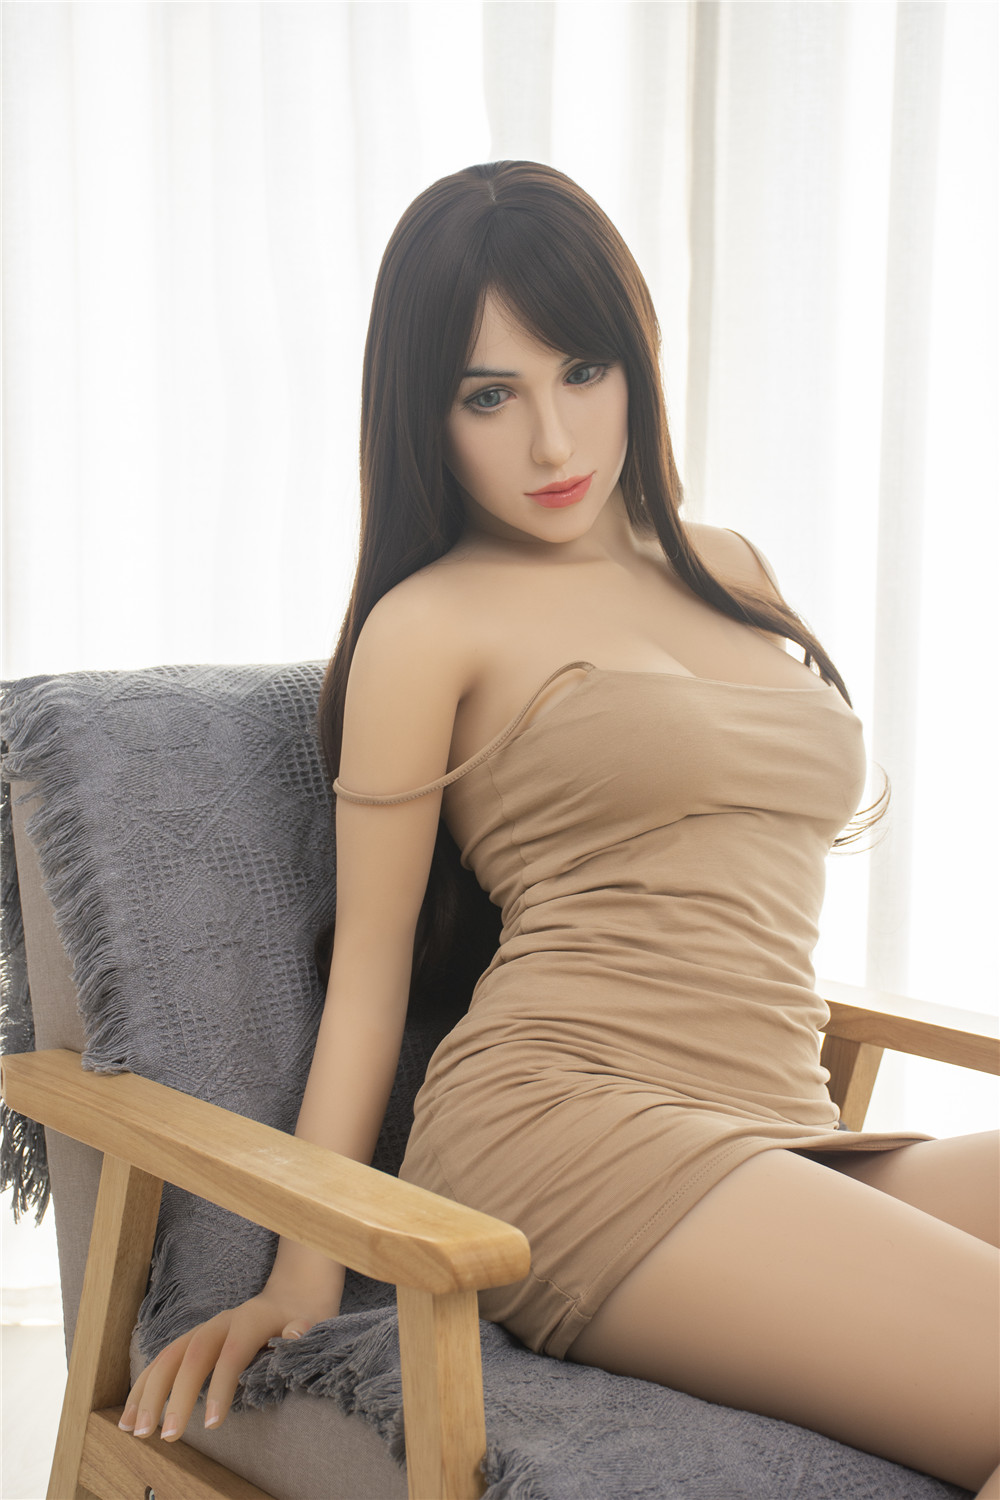 ZELEX Silicone Doll 155 cm(4.09 ft) Full Size Lifelike Sex Doll with #G07 Head